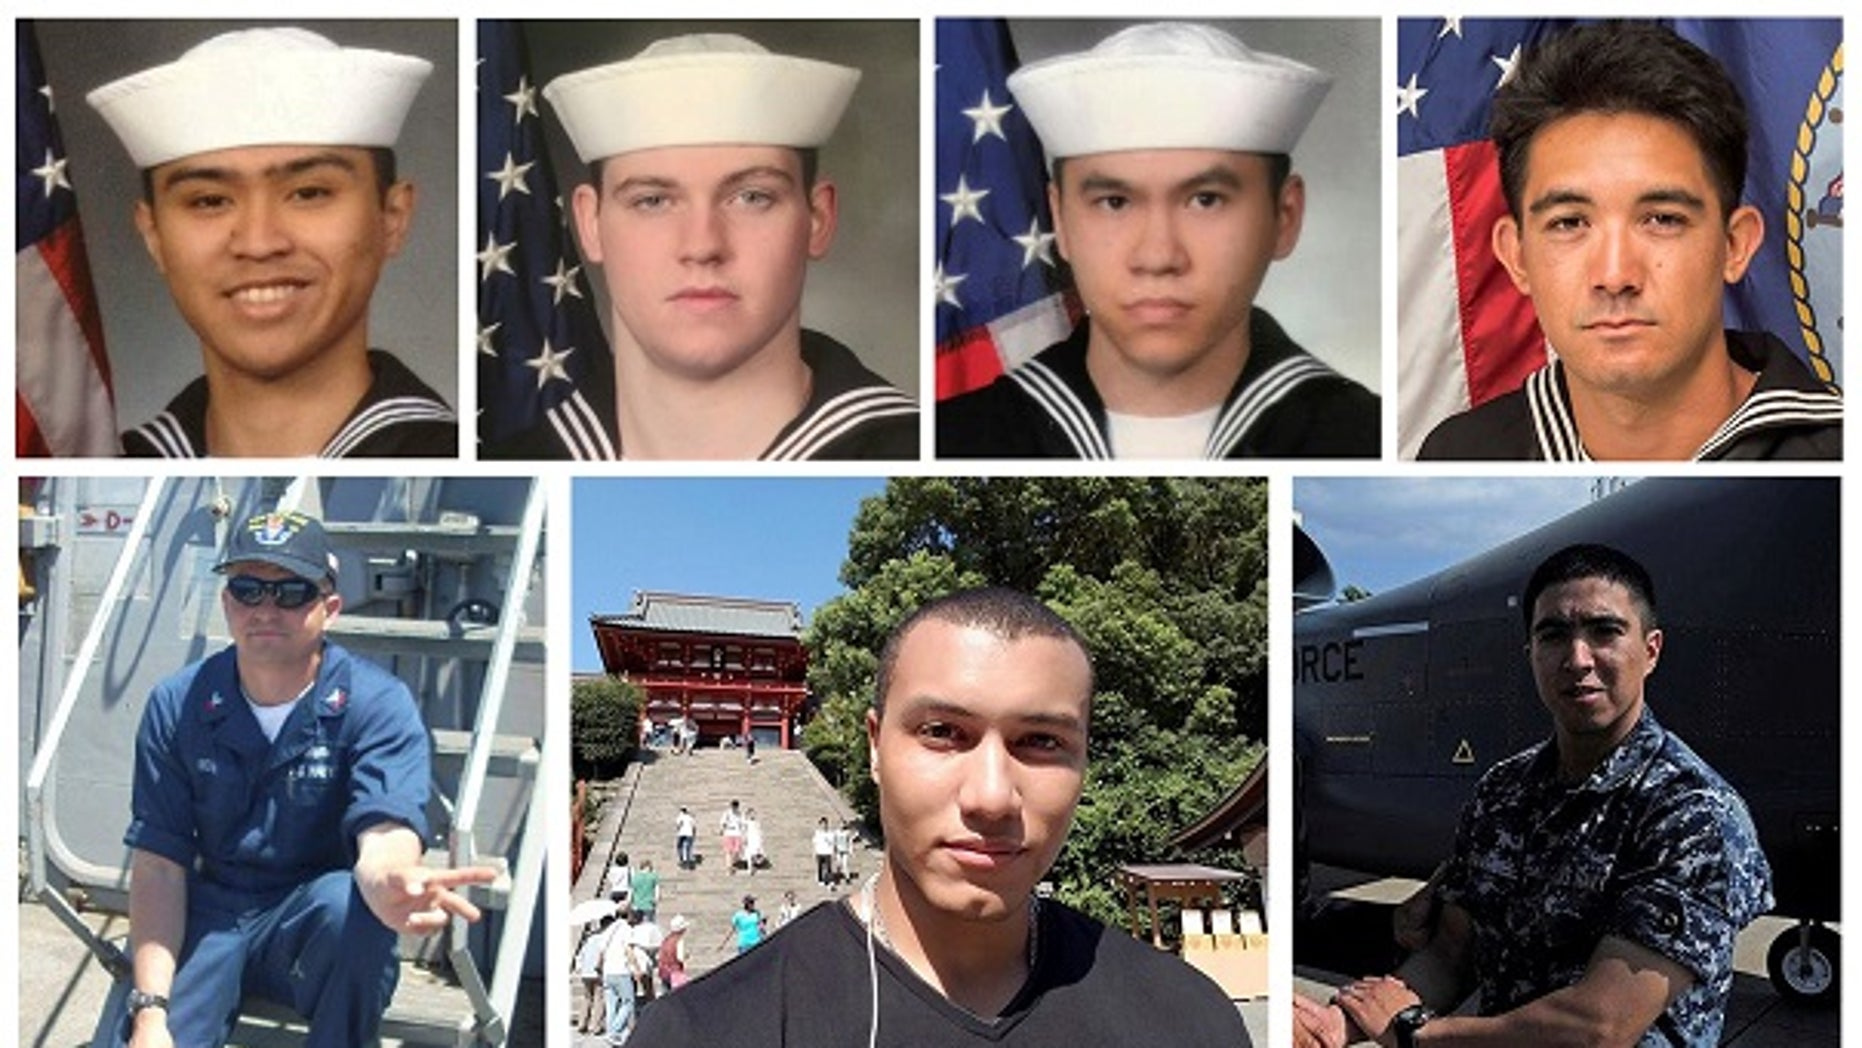 The U.S. Navy paid tribute on Tuesday to seven sailor who were killed when their destroyer collided with a merchant ship off Japan.